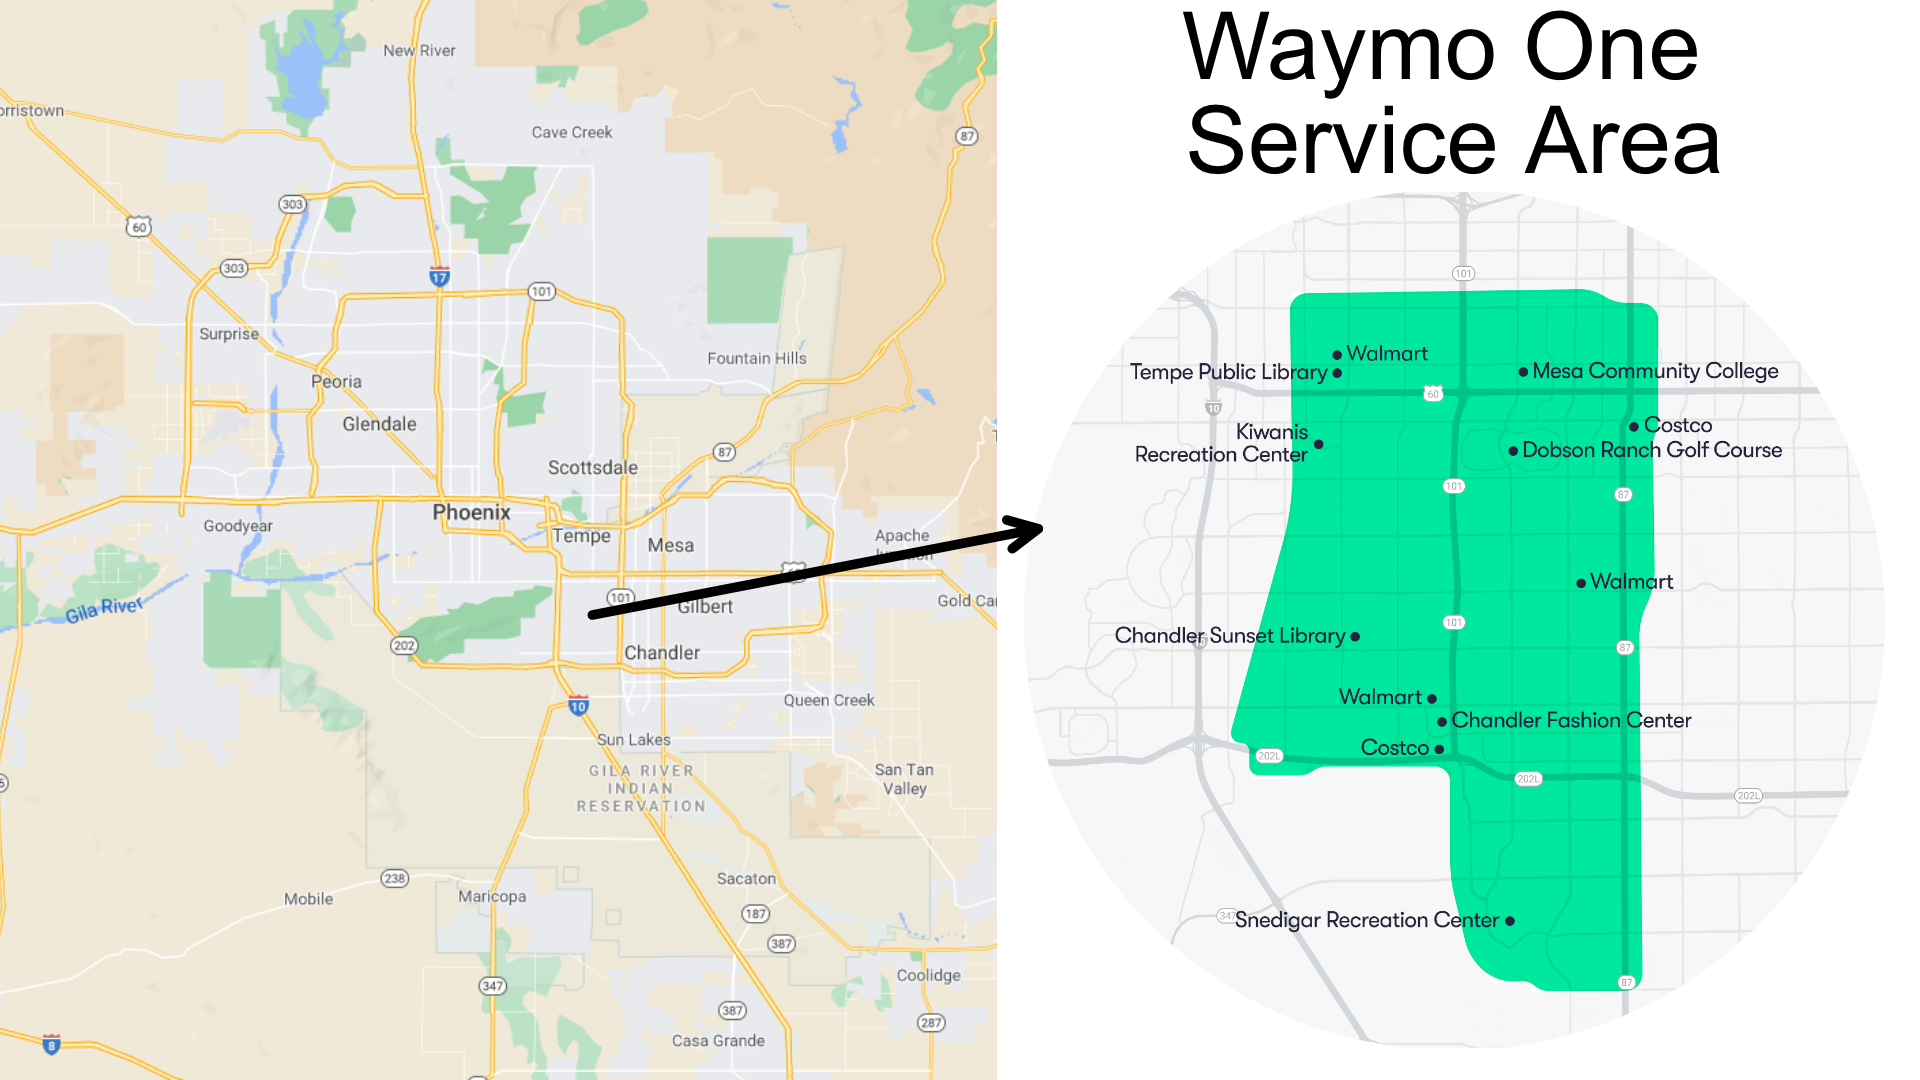 Waymo One service area in metro phoenix, specifically in Chandler, Tempe, and Mesa, Arizona